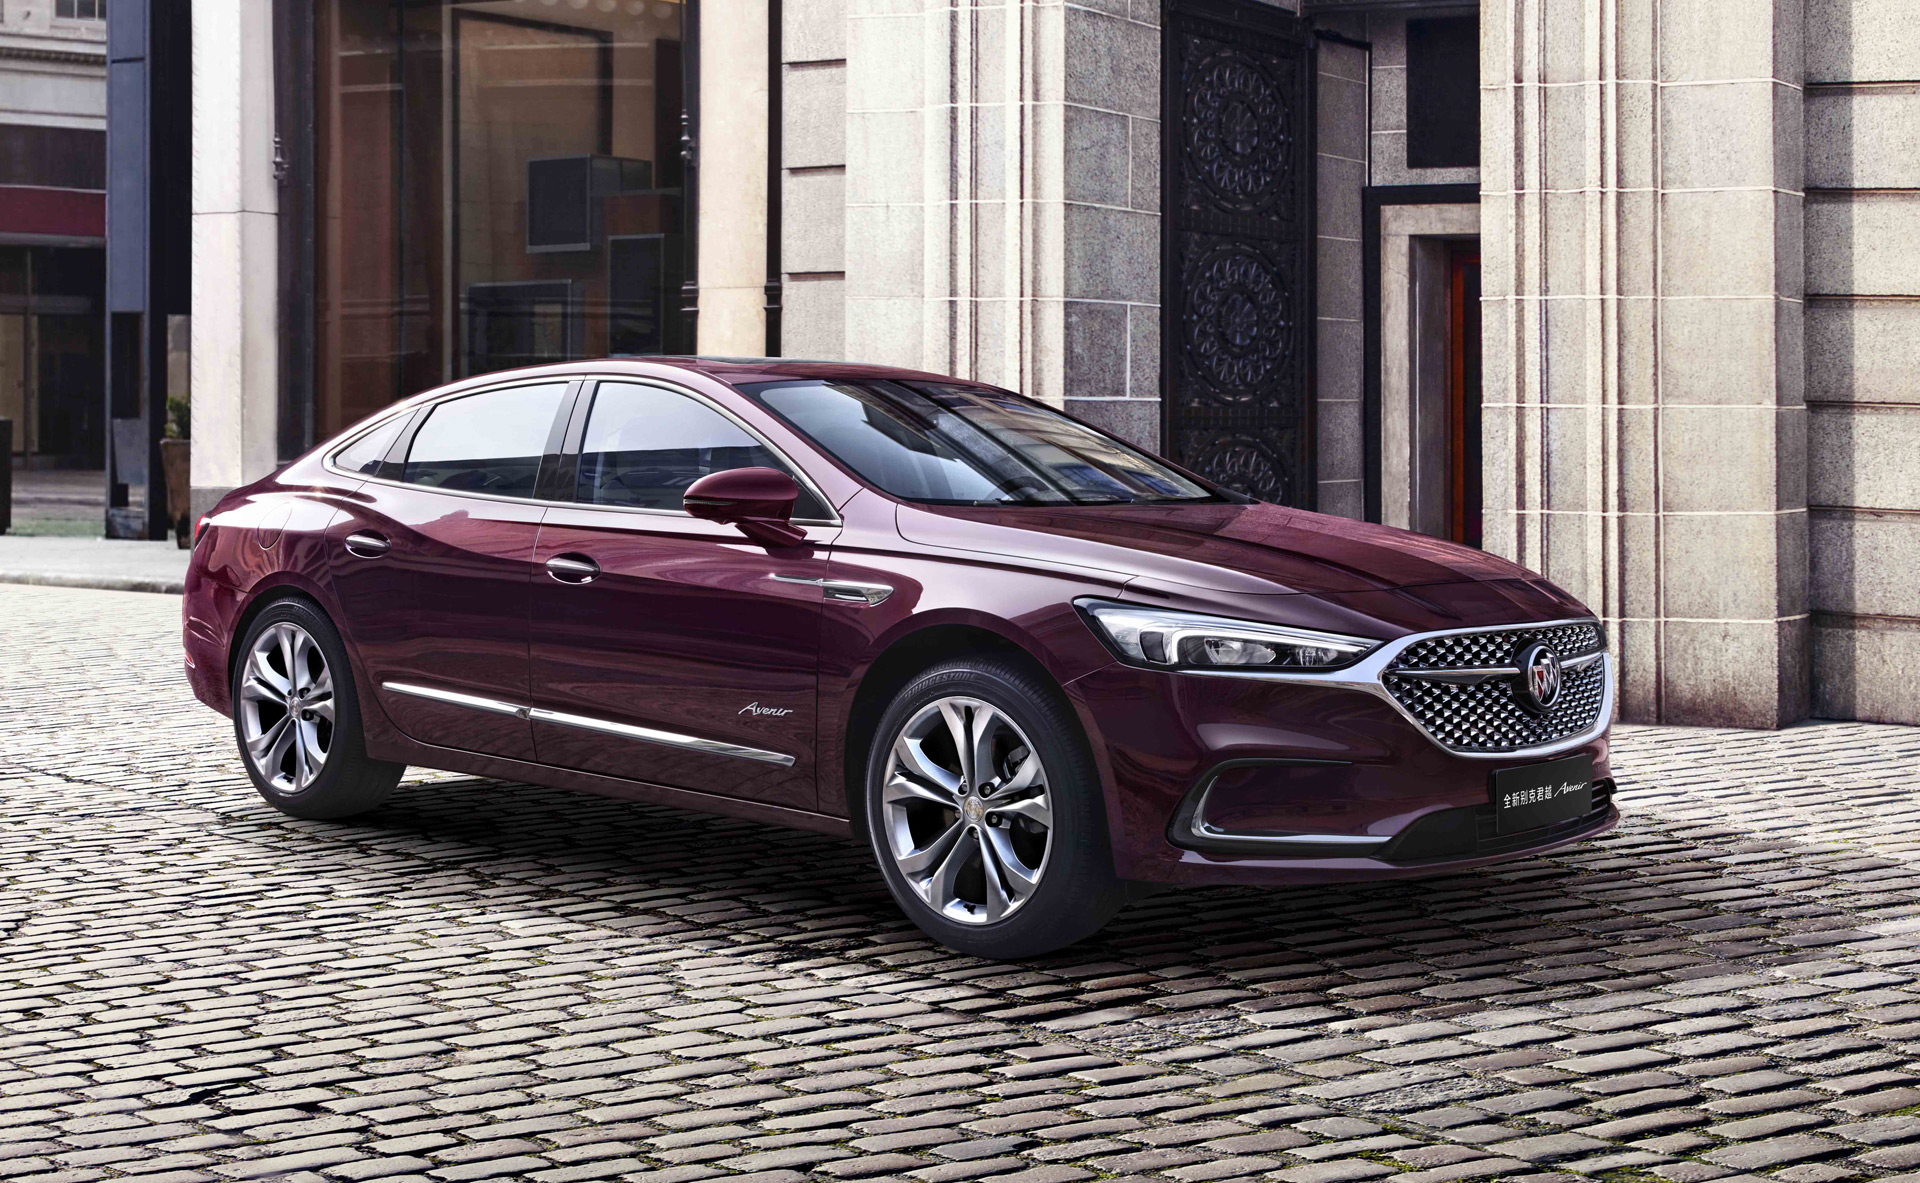 2020 Buick Lacrosse Made Handsome Just As It's Dropped In Us New 2021 Buick Lacrosse Images, Inside, Length